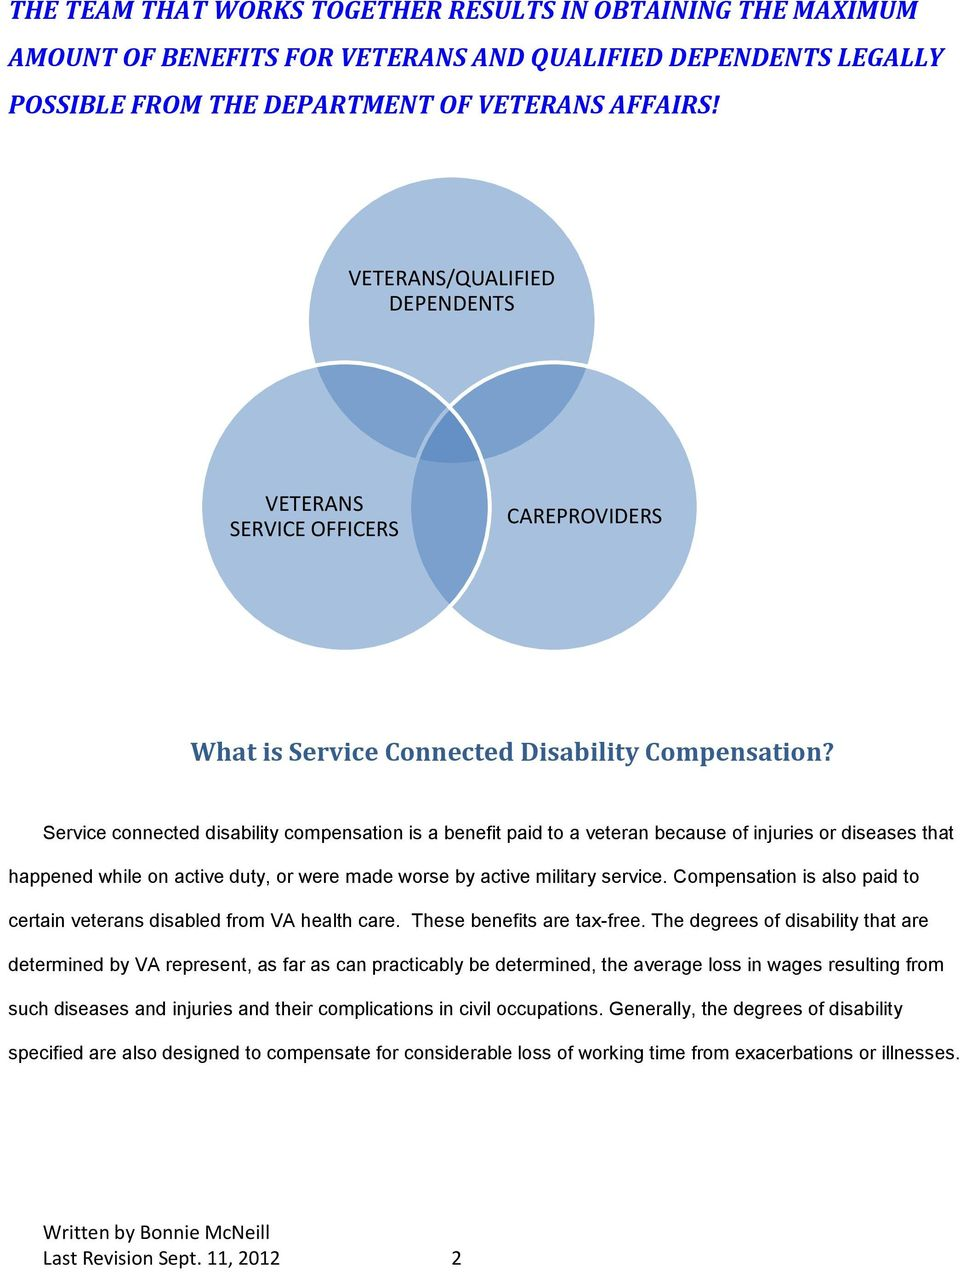 Service connected disability compensation is a benefit paid to a veteran because of injuries or diseases that happened while on active duty, or were made worse by active military service.